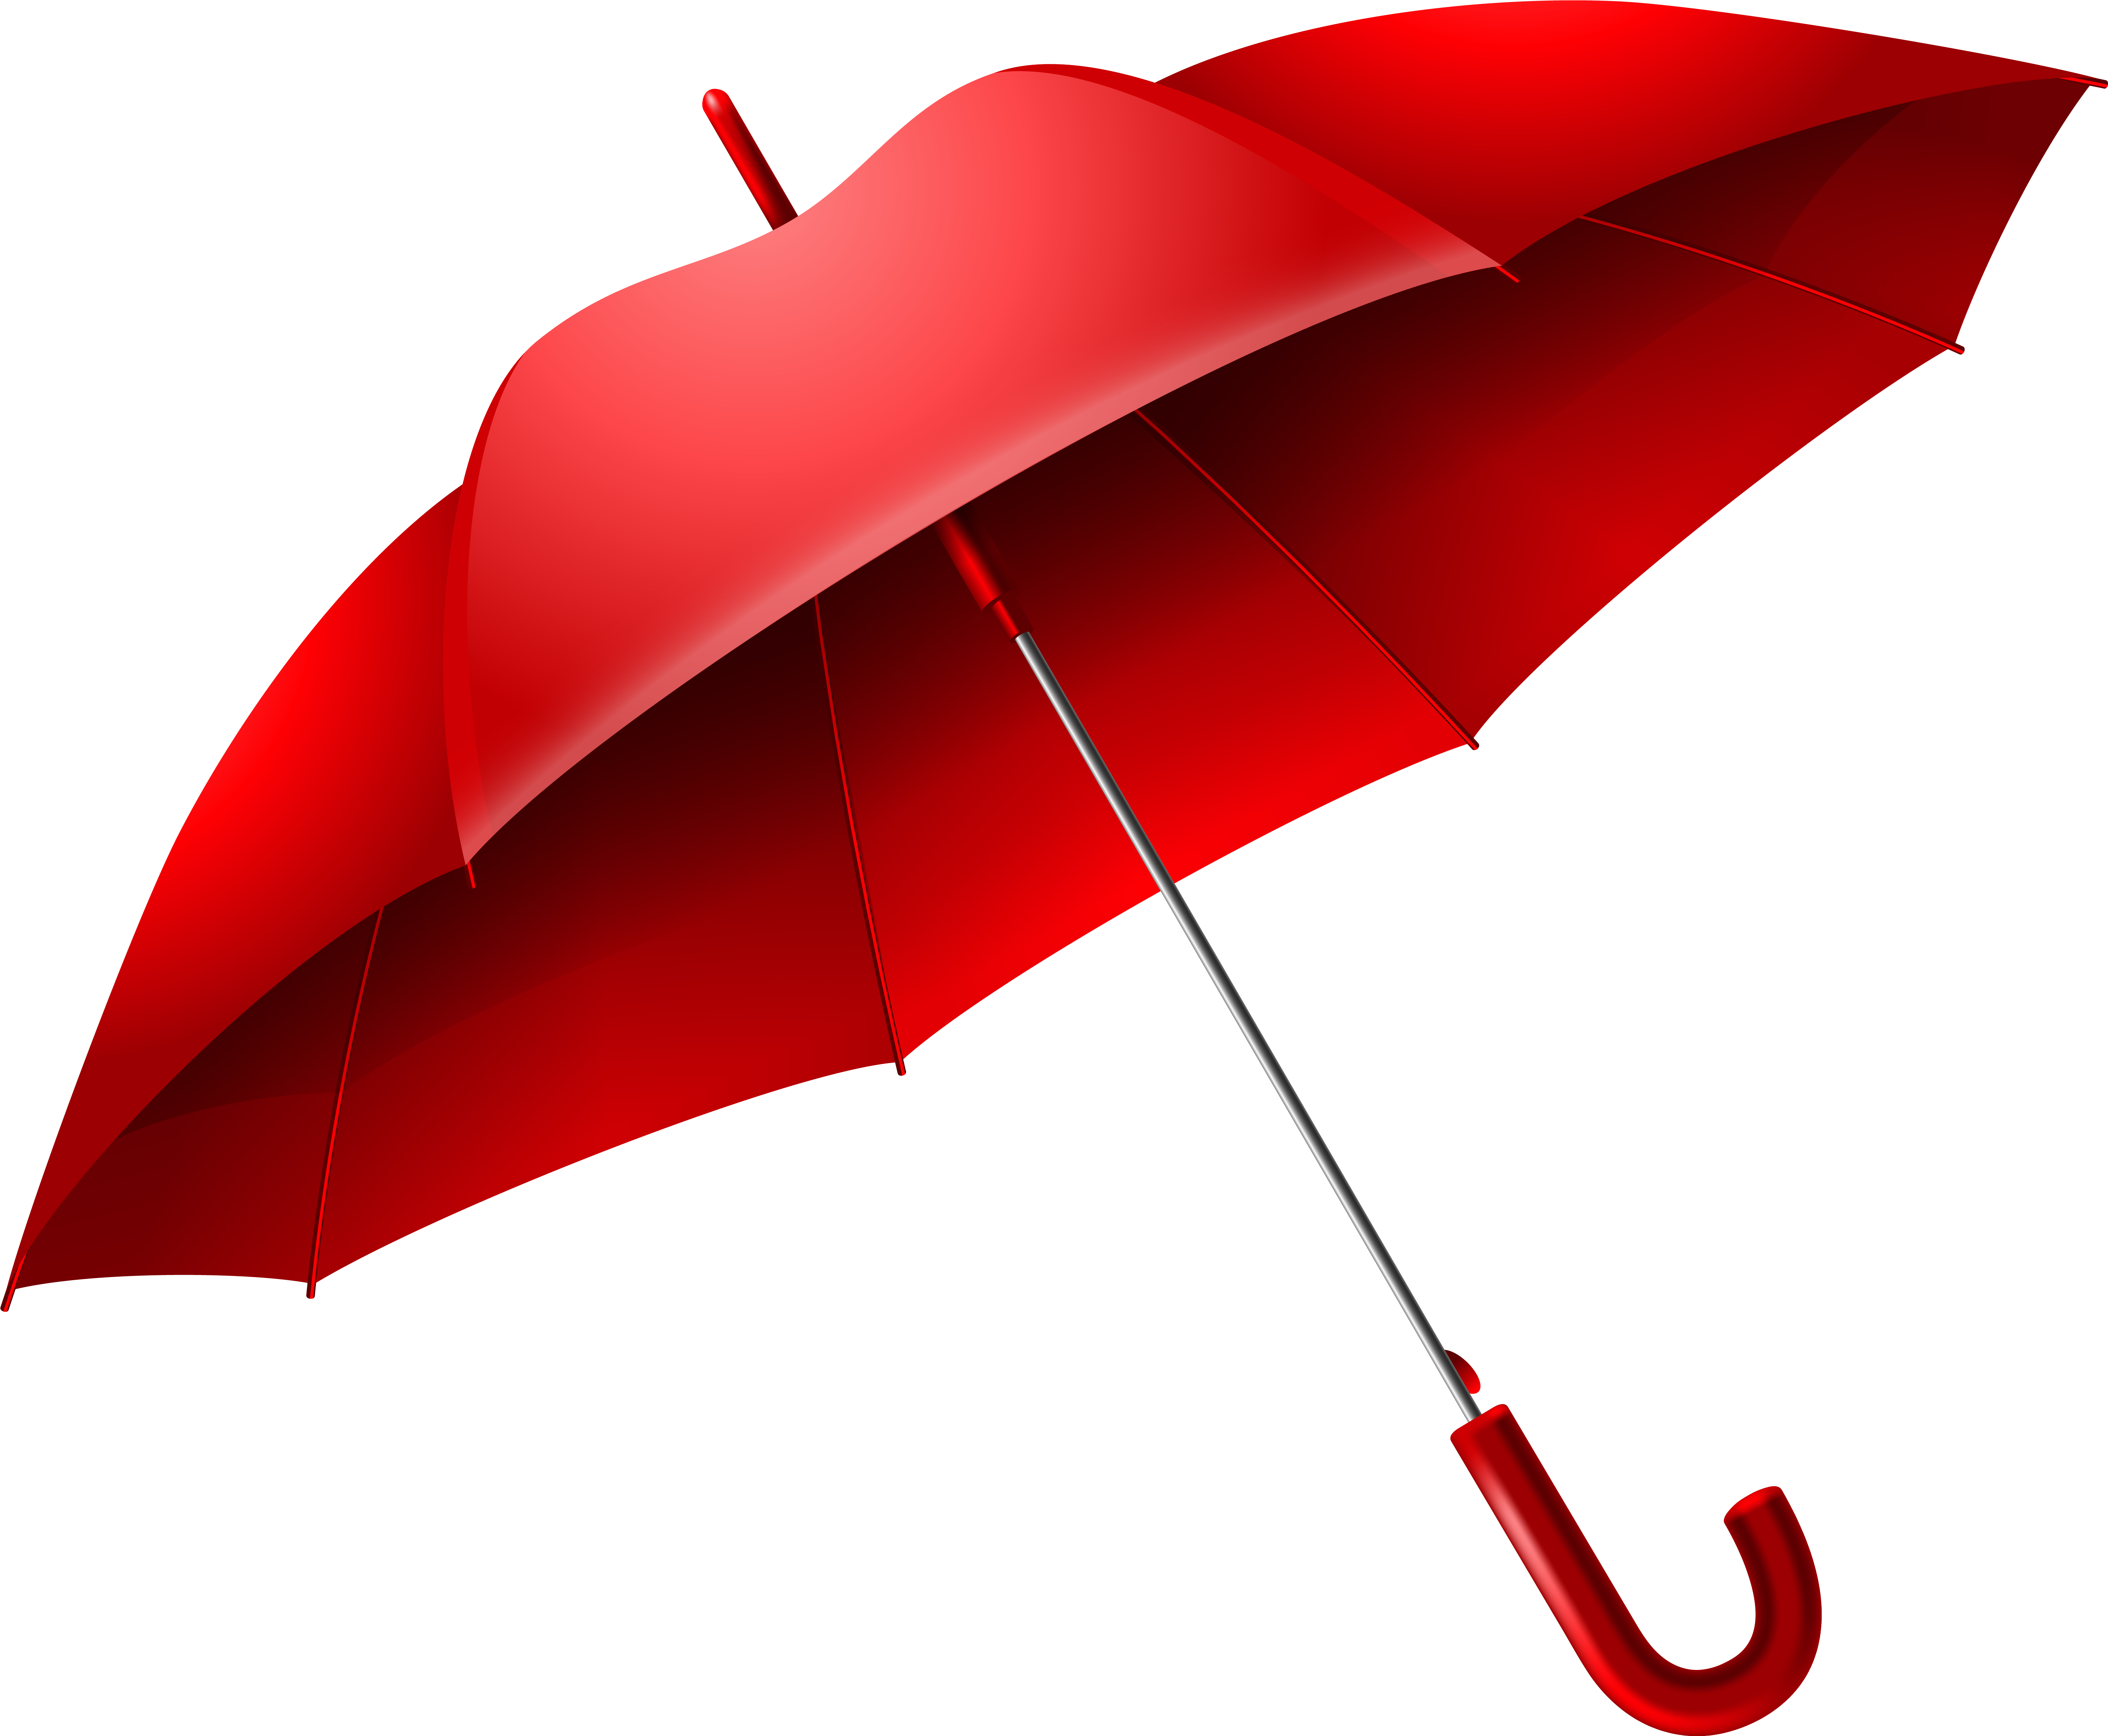 Red Image Gallery Yopriceville Red Umbrella Png Full Size Png Download Seekpng Umbrella corps umbrella corporation logo, umbrella, company, text, umbrella png. seekpng